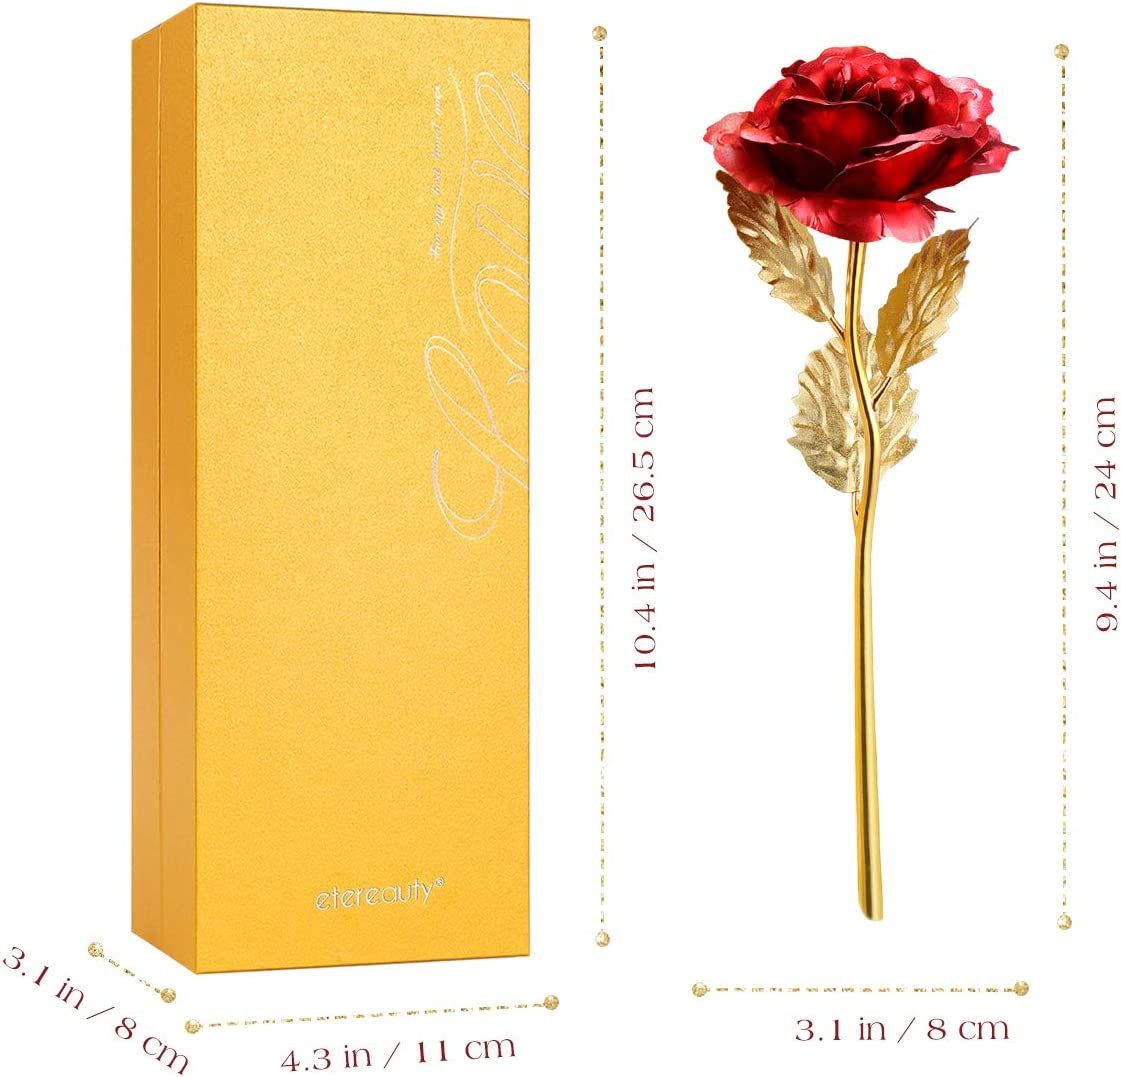 24k Gold Rose, ETEREAUTY Artificial Gold Rose with Elegant Gift Box and Card, Romantic Presents